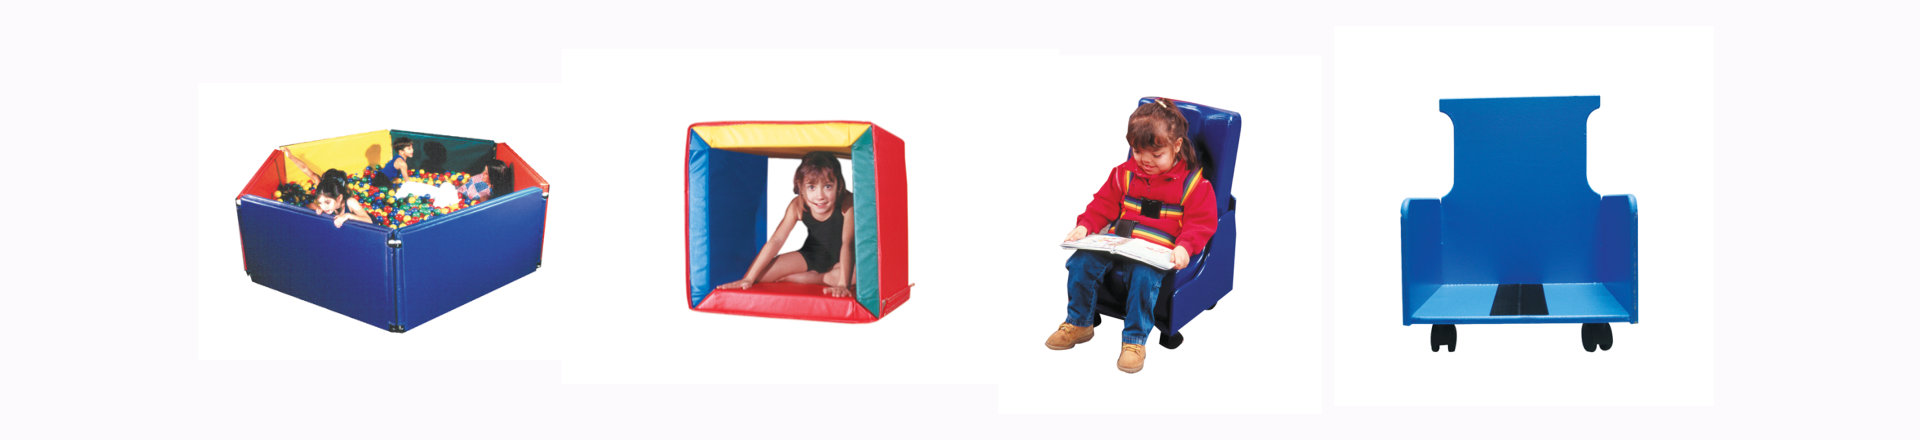 Pediatric Special Needs Product